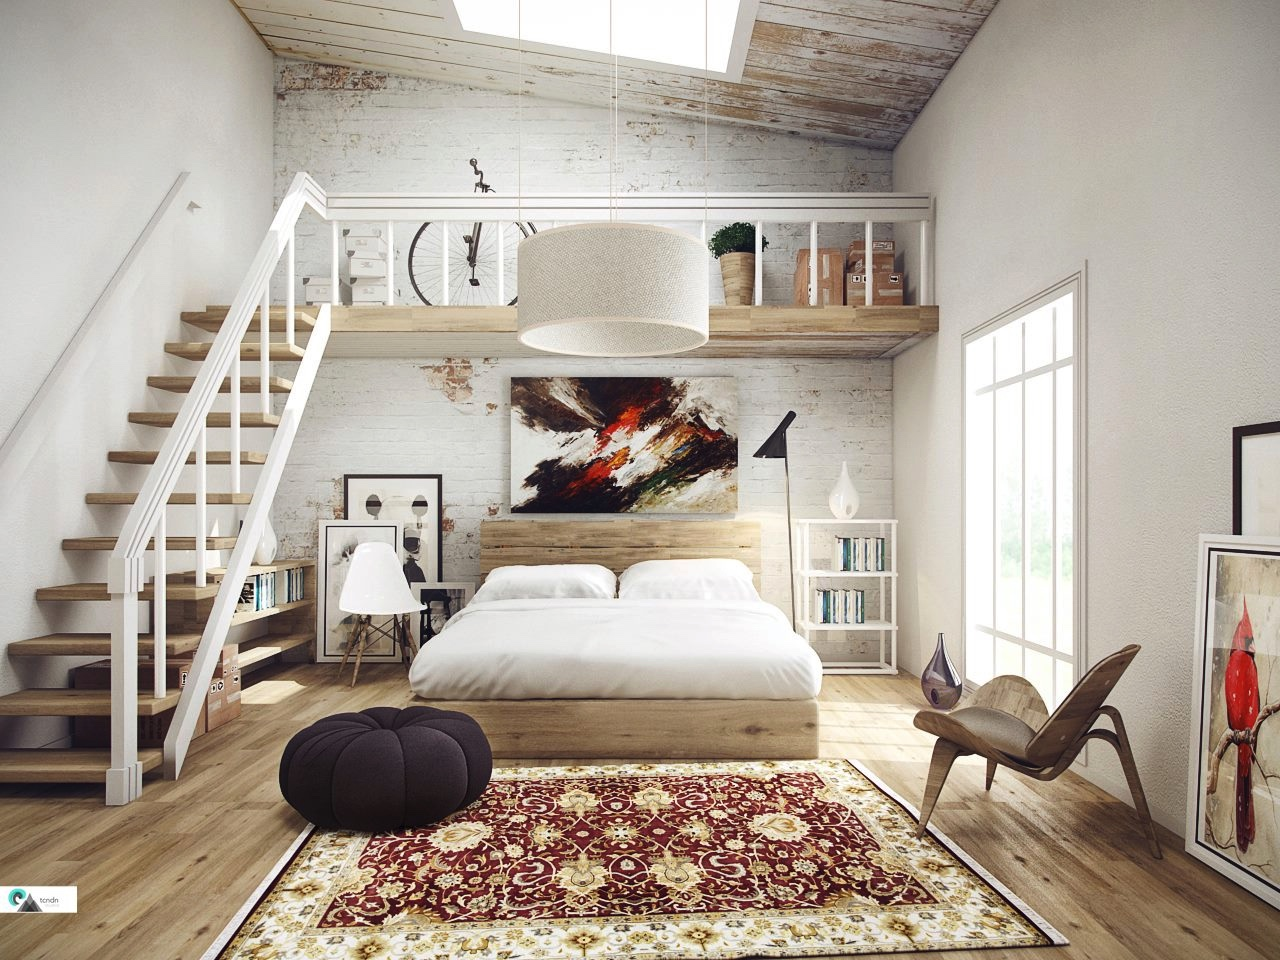 Bedroom Design Loft 10 Gorgeous Bedroom Designs That Perfect For Laying All